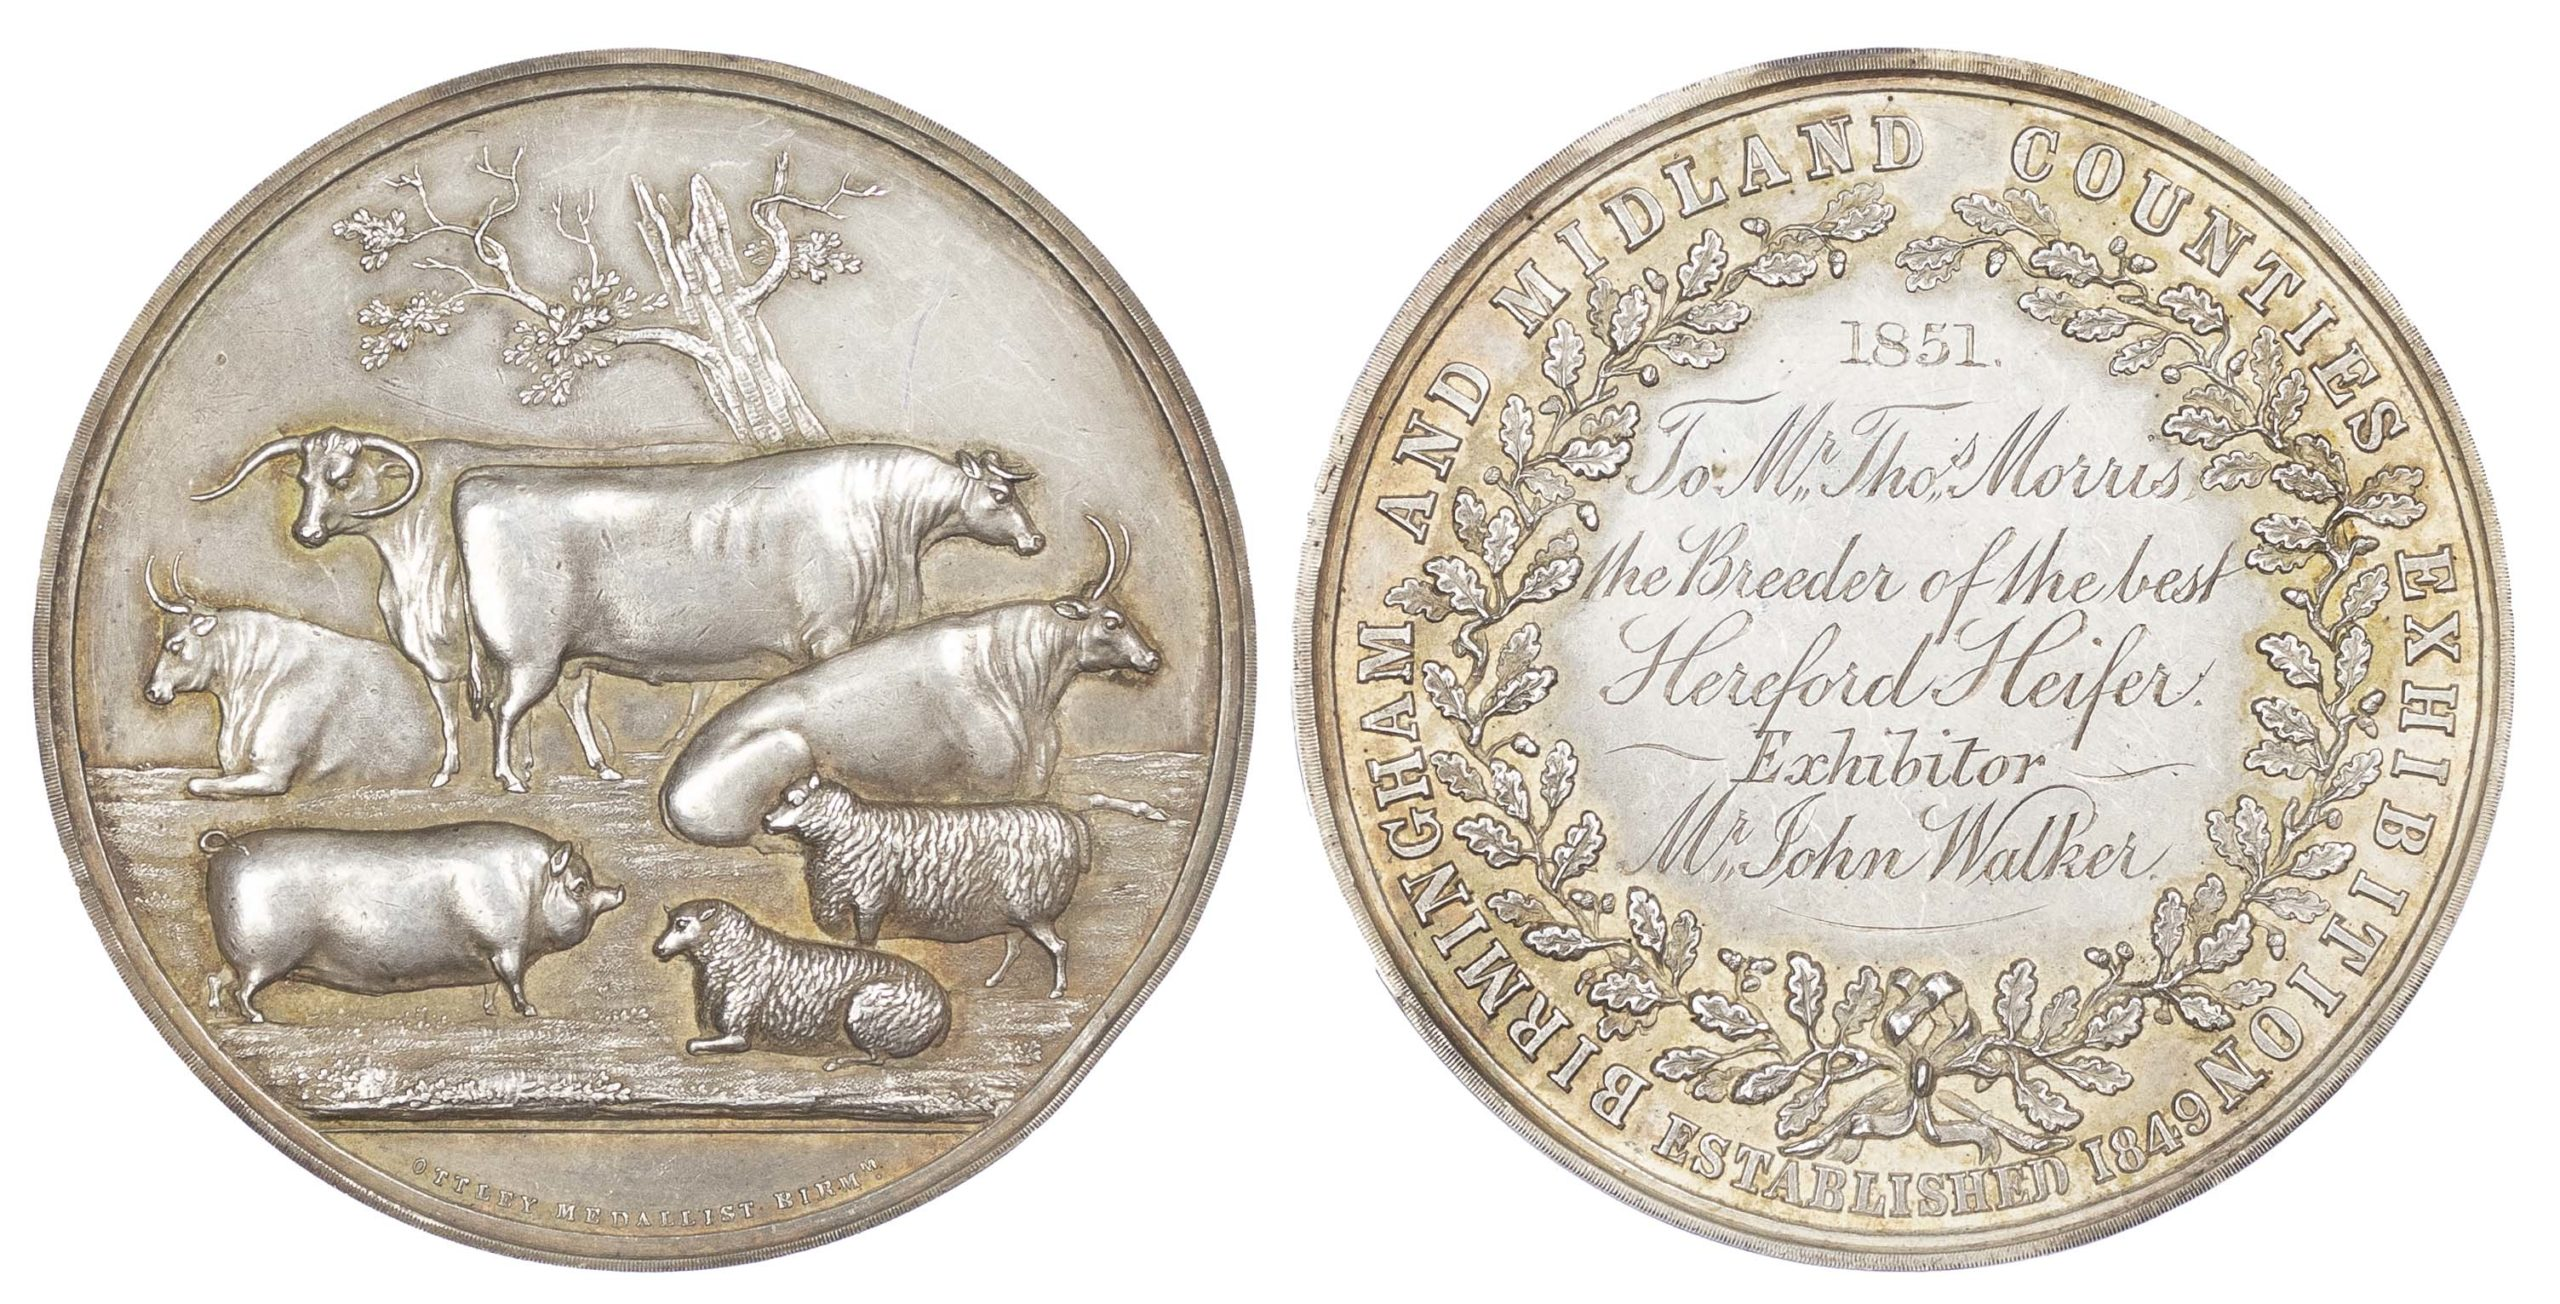 Agricultural prize medal, Birmingham and Midland Counties Exhibition Silver medal 1851